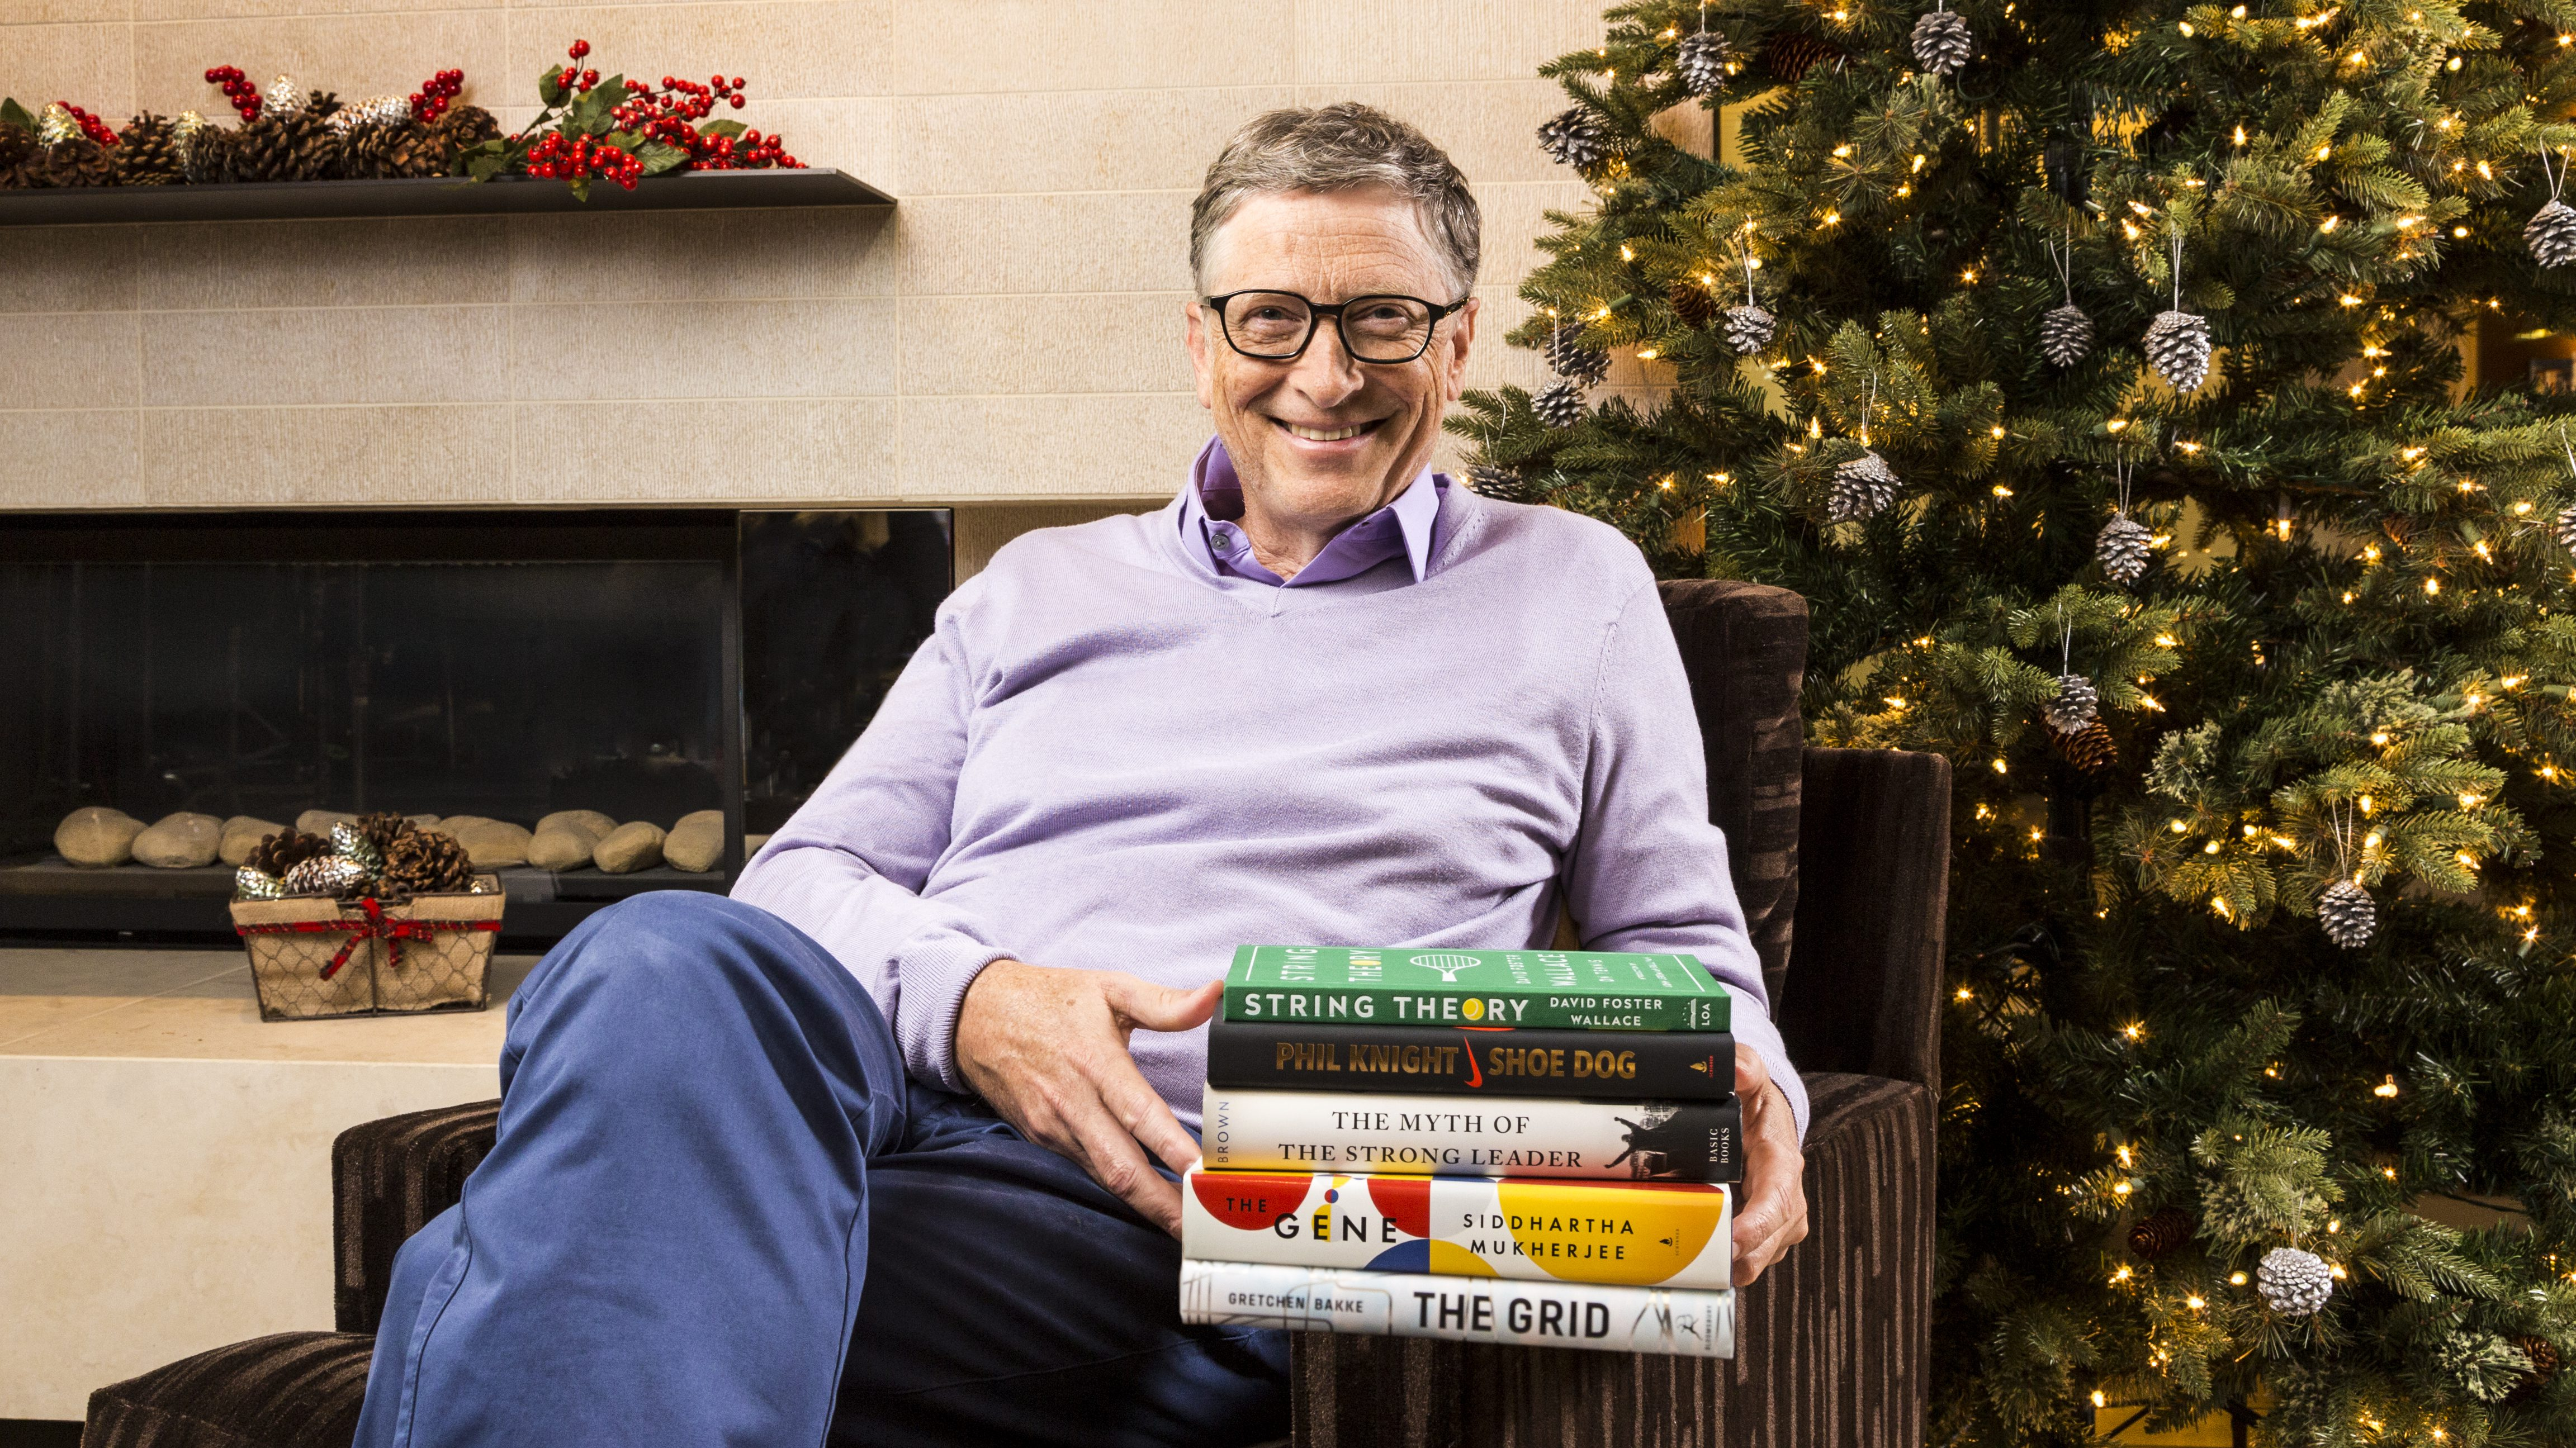 These are the best books Bill Gates read in 2016